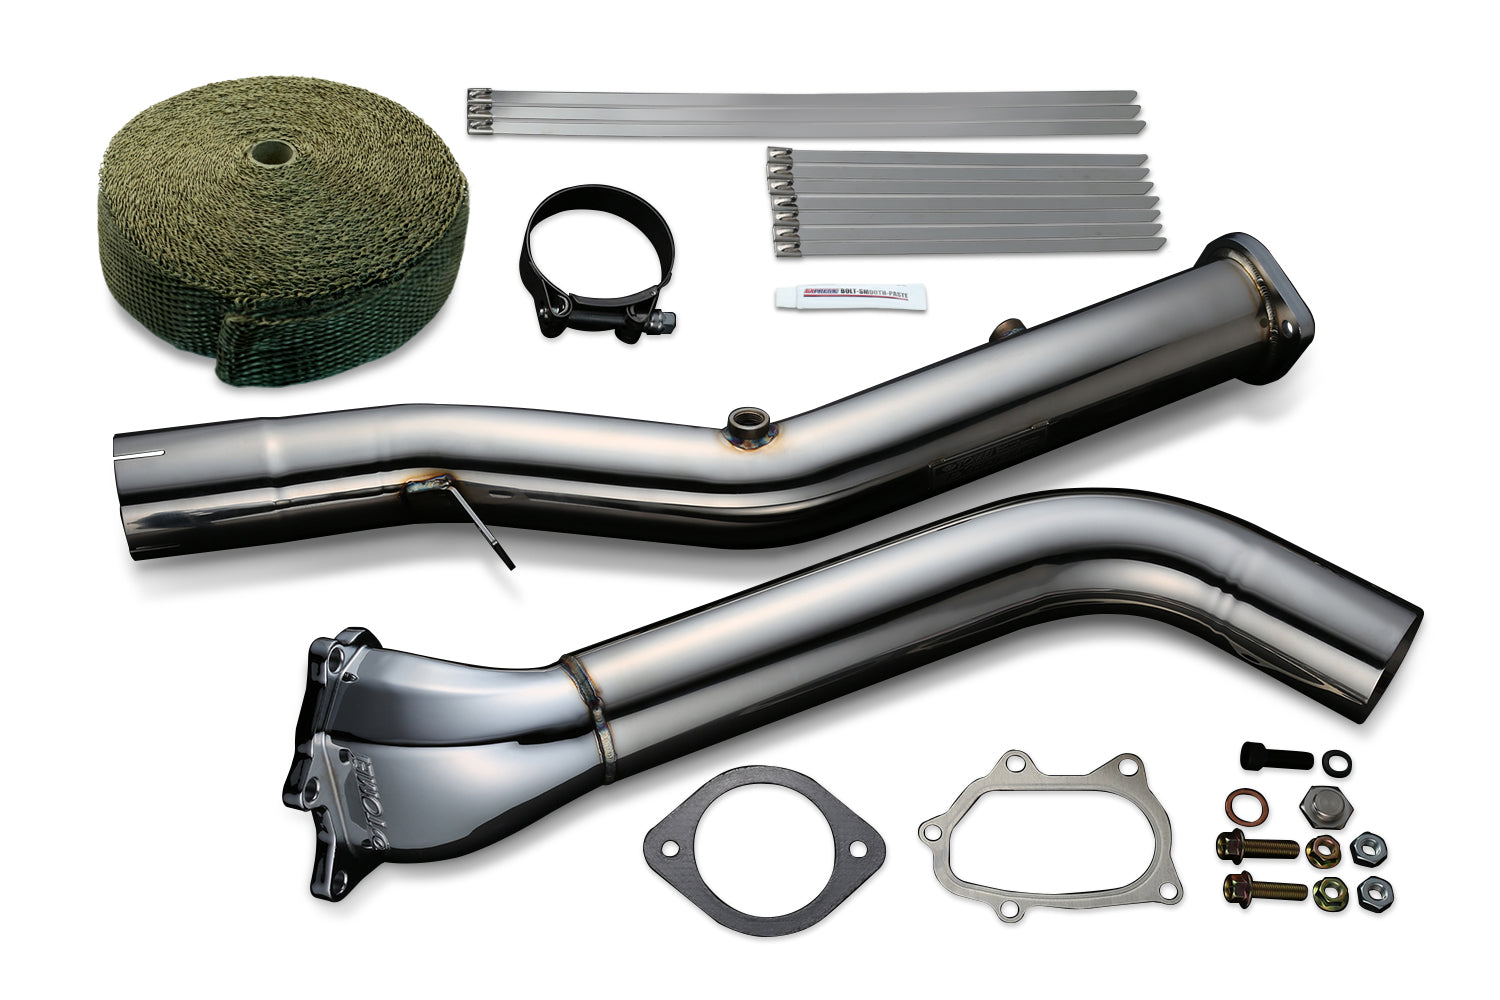 Tomei STRAIGHT DOWN PIPE KIT EXPREME EJ SINGLE SCROLL GR/GV/GE/GH/VA Ver.2 with TITAN EXHAUST BANDAGE (Previous Part Number 431106)